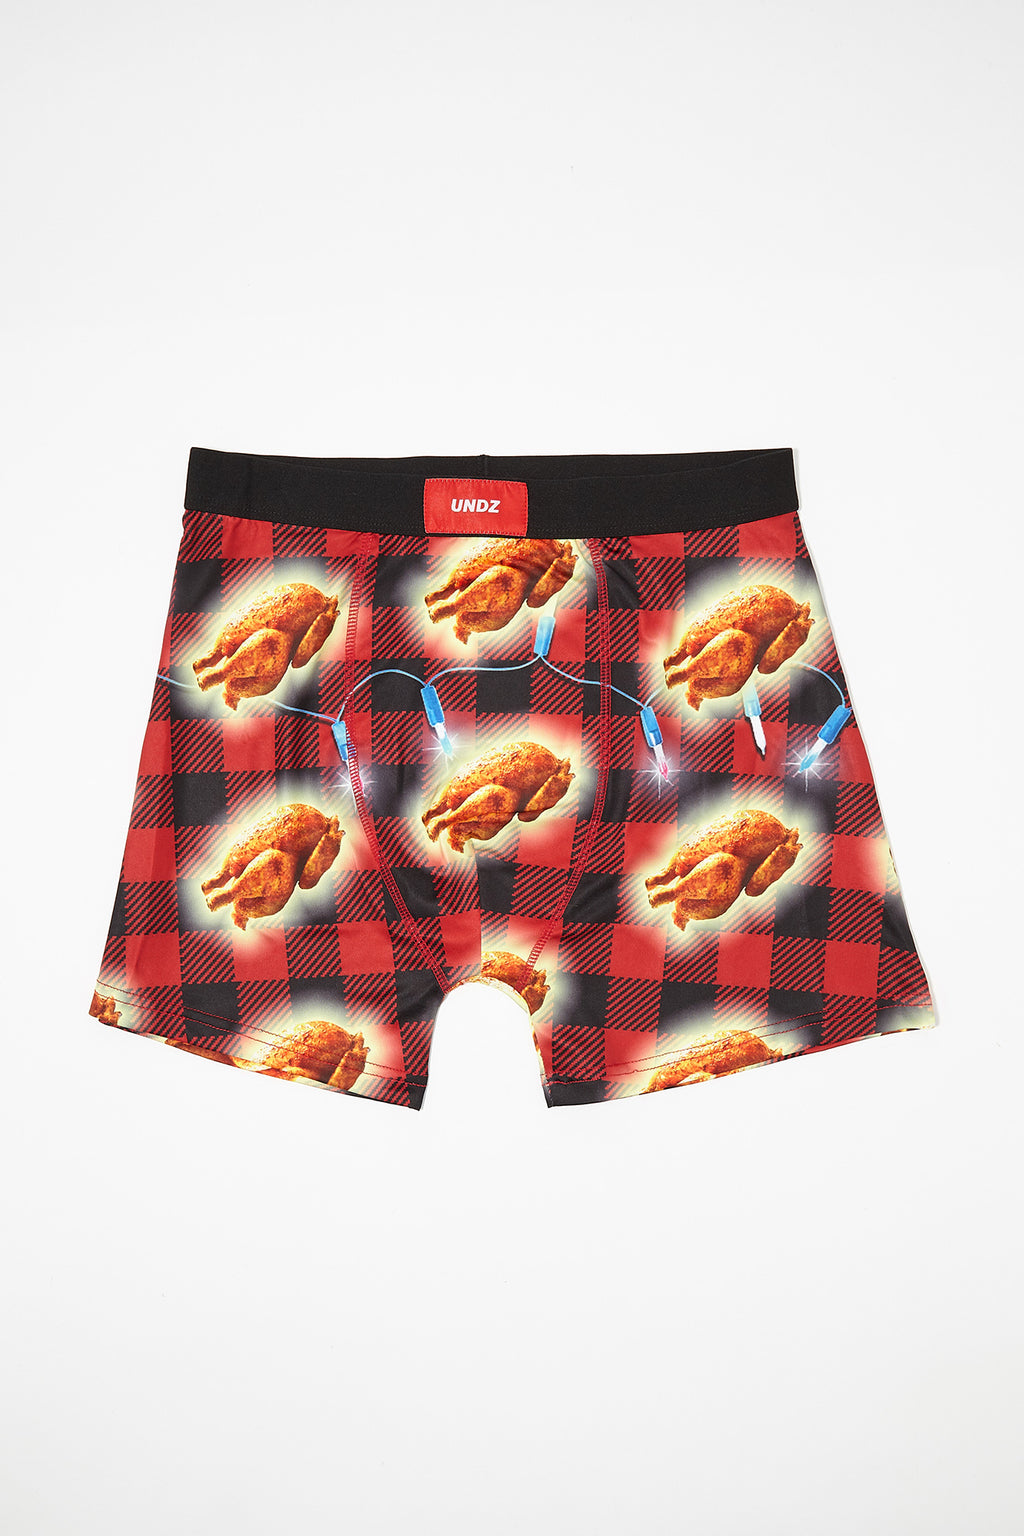 UNDZ Mens Turkey Boxer Brief